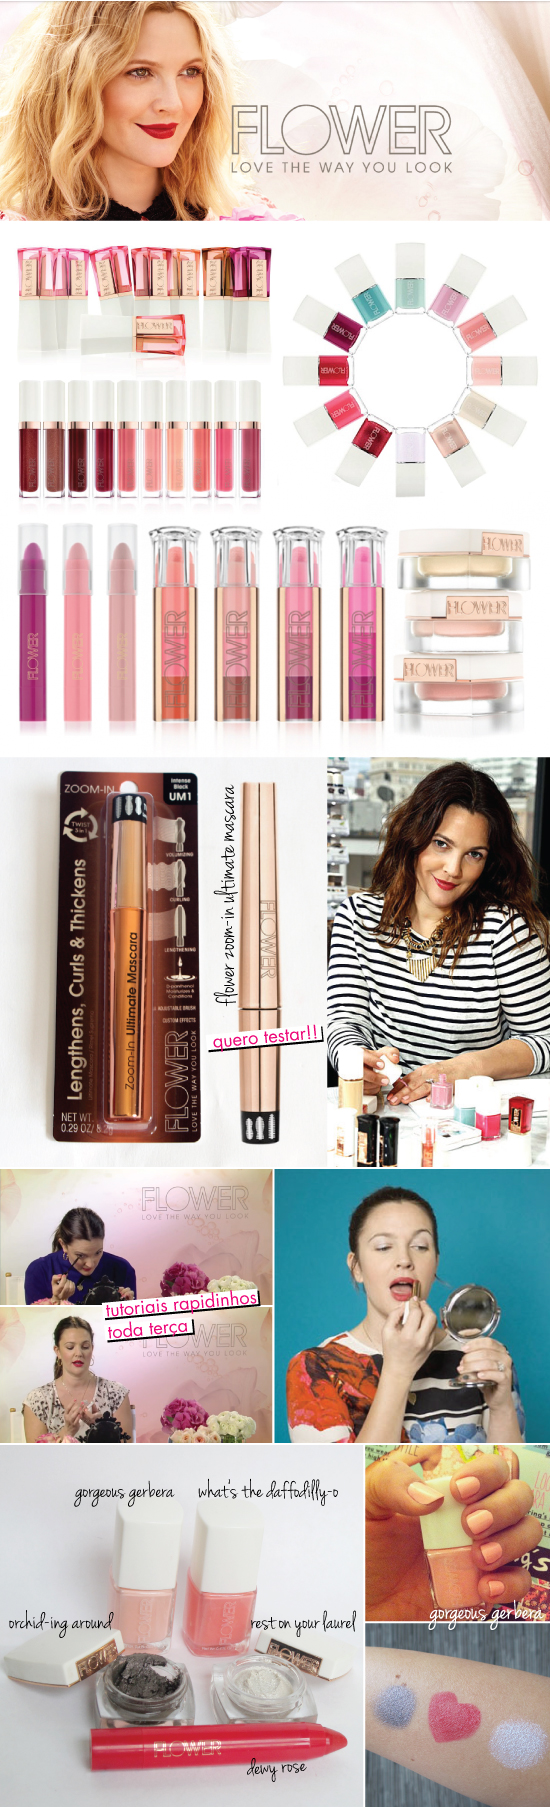 FLOWER BEAUTY DREW BARRYMORE MAKEUP MAKE BEAUTY COSMETICOS COMETICS PRODUTOS PRODUCTS ESMALTE NAIL POLISH EYE SHADOW LIPSTICK PENCIL WALMART ONDE COMPRAR SWATCHES